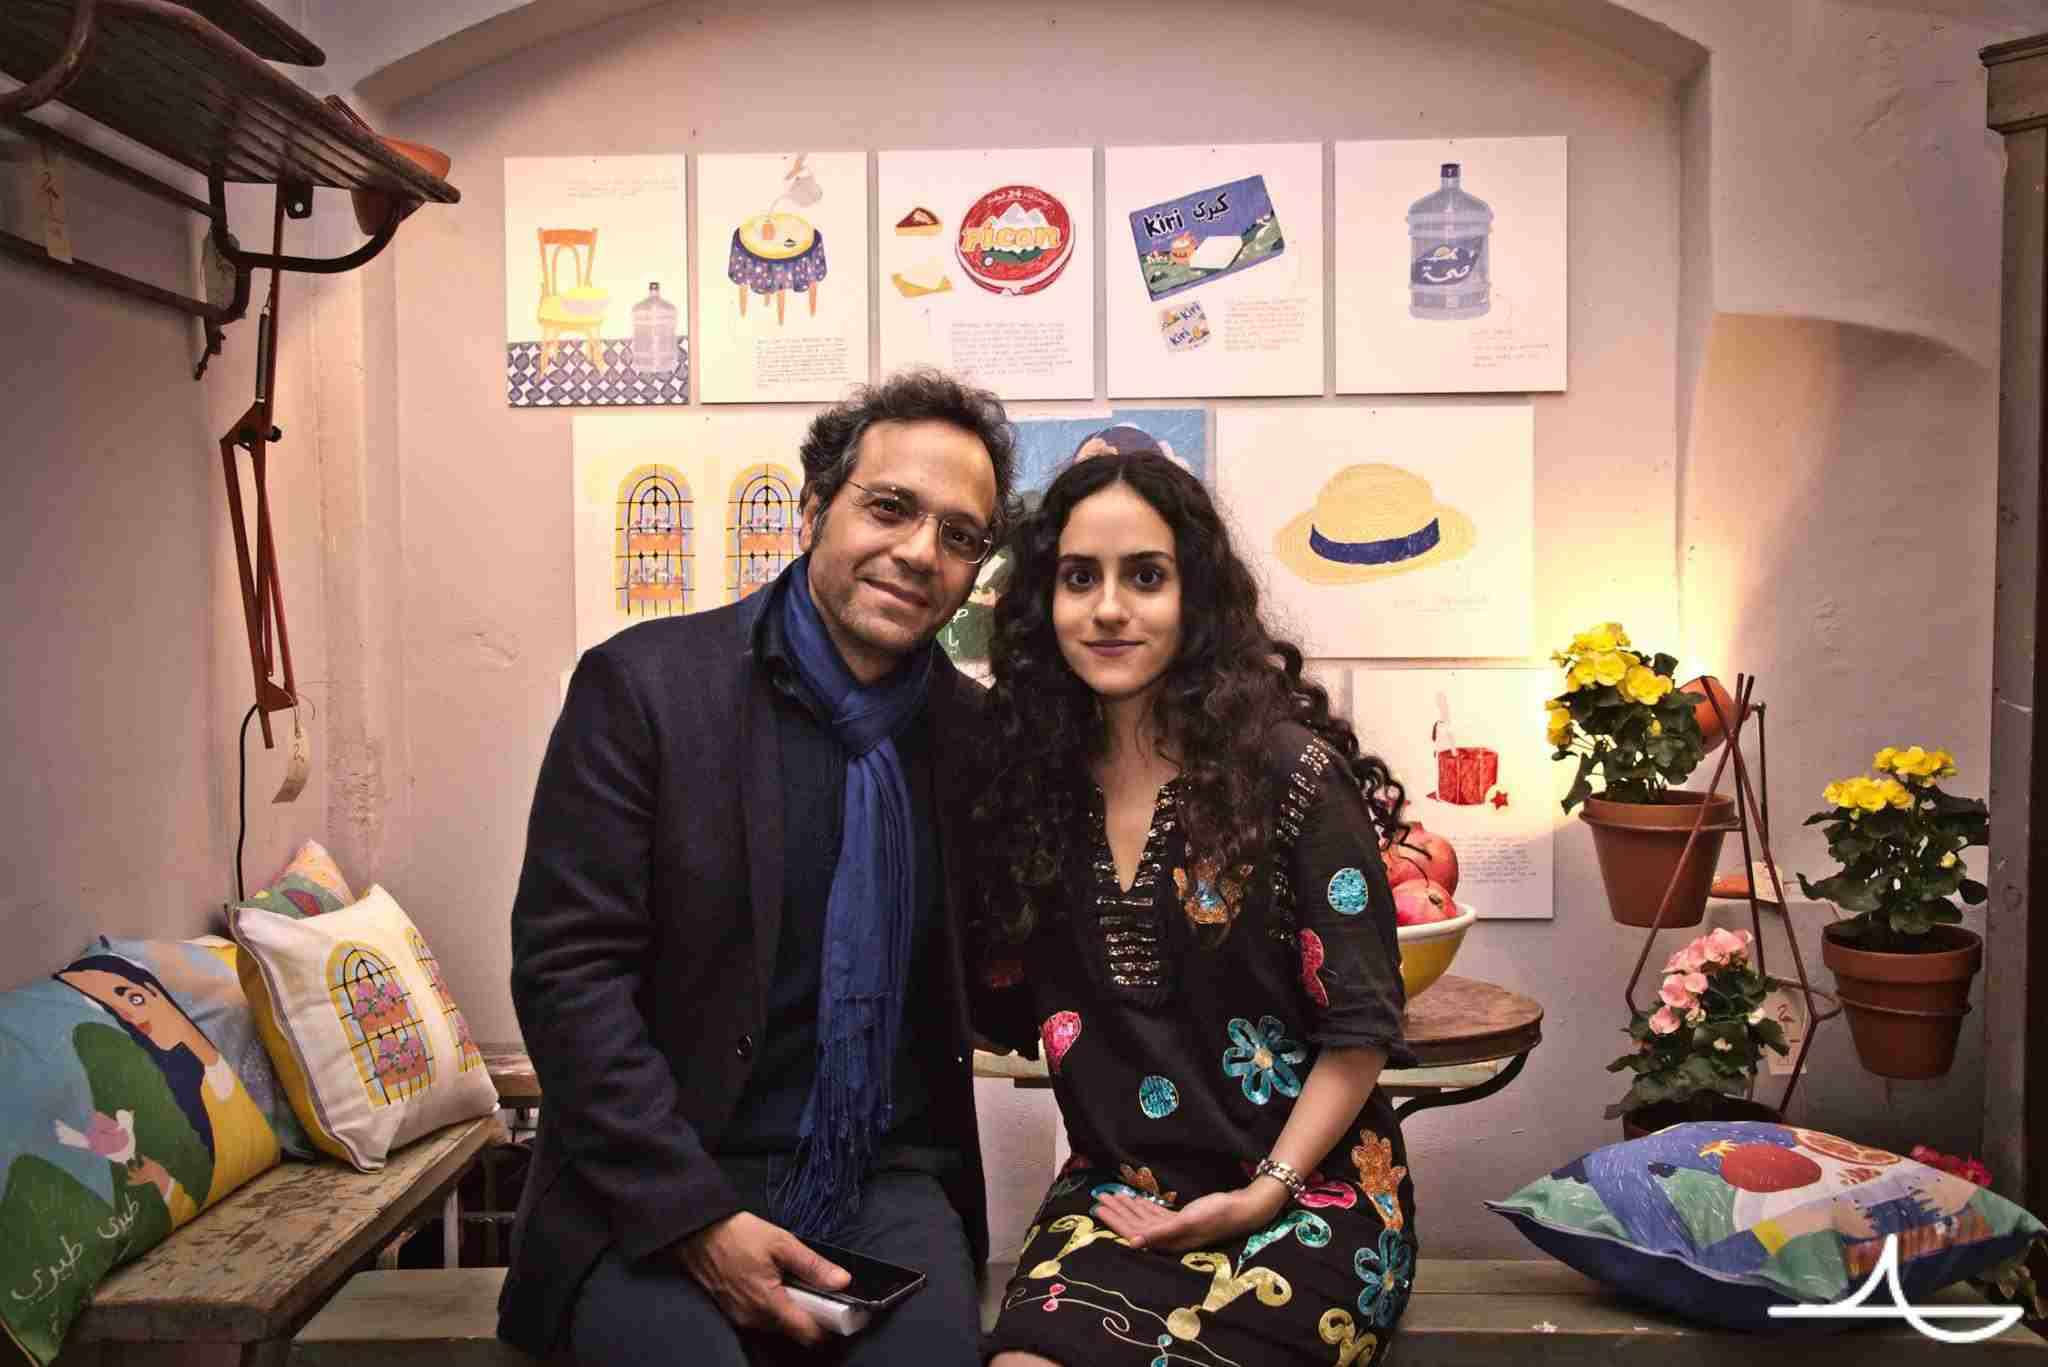 Lebanese-Kuwaiti illustrator Nour Flayhan and her father